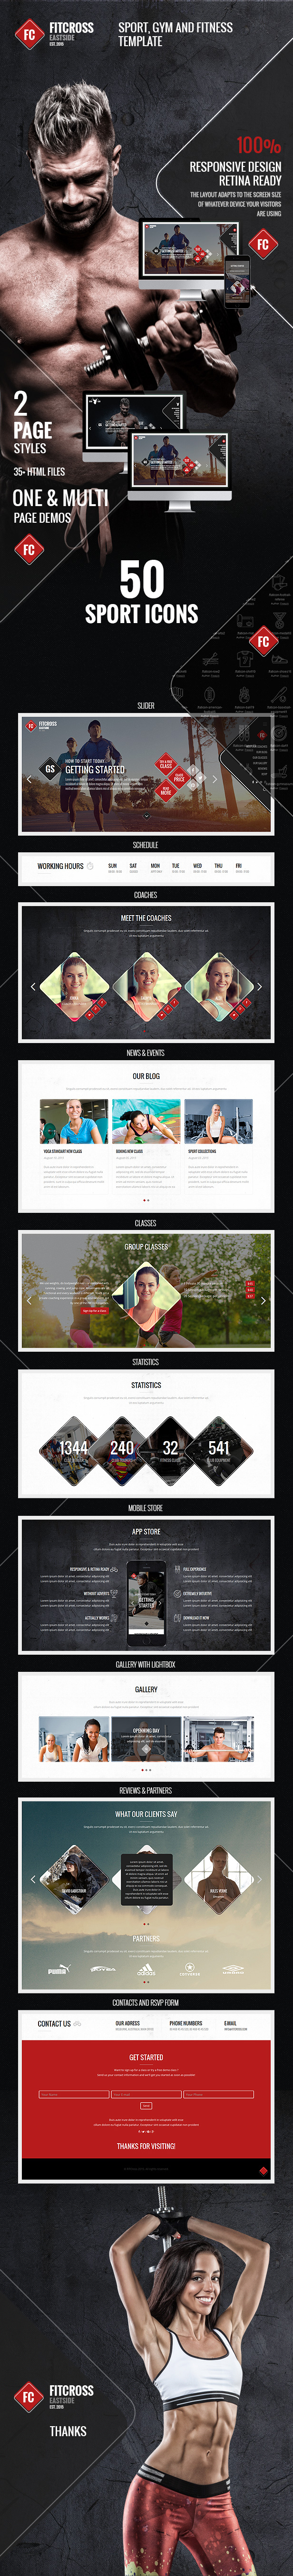 FitCross - Responsive Sport, Gym and Fitness Template - 1